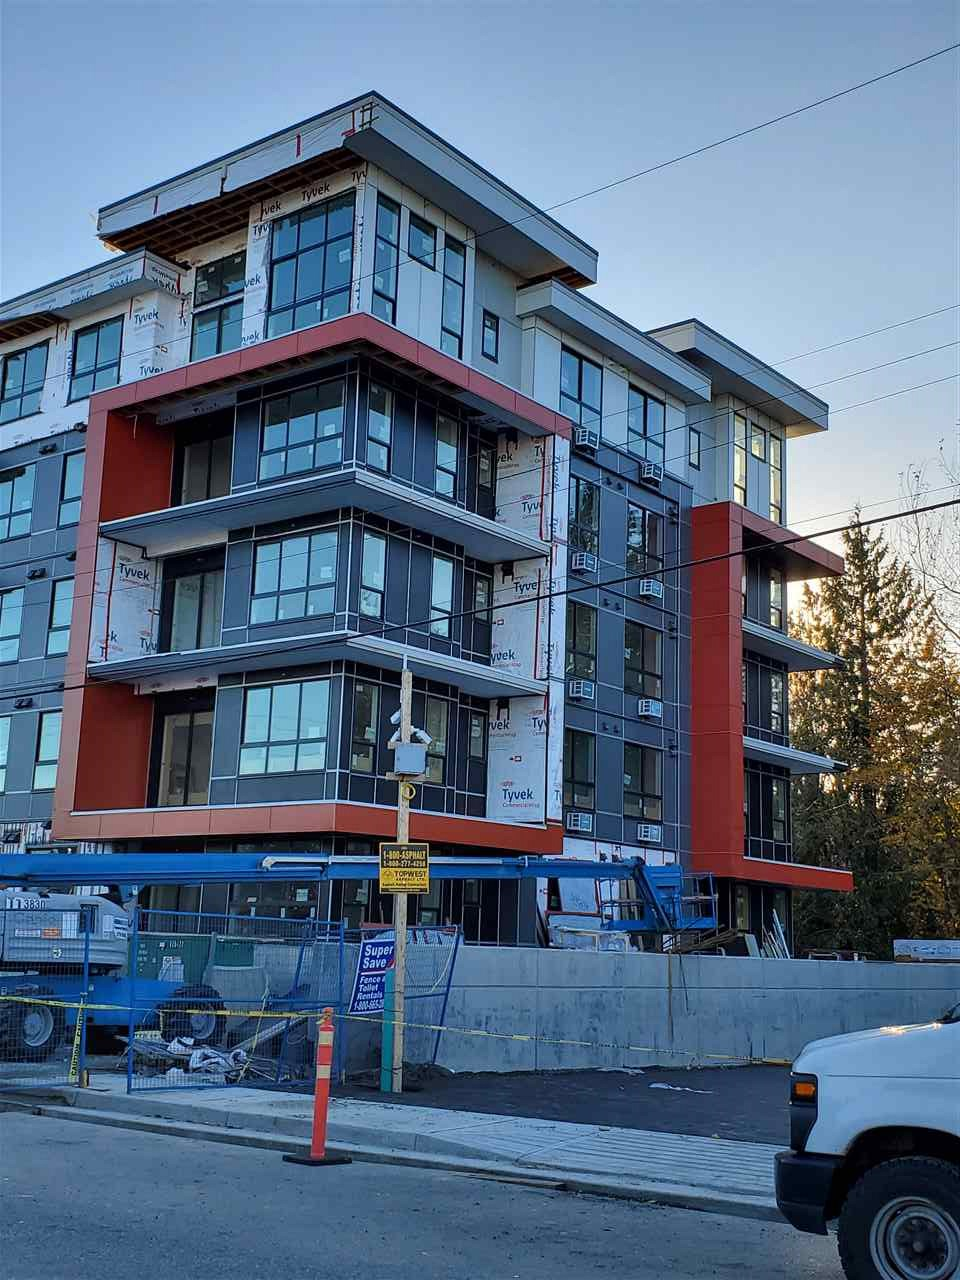 2 PARKING STALLS! The Wesley at Brydon Creek is all sold out. Why not buy this assignment of a BRAND NEW CONDO ready late 2020? There are rumors of a Skytrain extension reaching Langley sometime and well, you know.. You can rent this out on completion and wait, or you can live in it yourself as it is a premium offering anyone would be happy with! This  Junior 2 bedroom/ 1 bedroom plus den features high end finishes, 9 foot ceilings, and A/C in the Master Suite! Walk-in closet space leads onto the ensuite bathroom that doubles as a powder room and features Kohler fixtures and undermount sink. The kitchen is beautiful, just see attached video link! The Wesley will feature amenities rooms on every floor, sound deadening insulation in floors. ceilings and energy efficient tankless hot water.